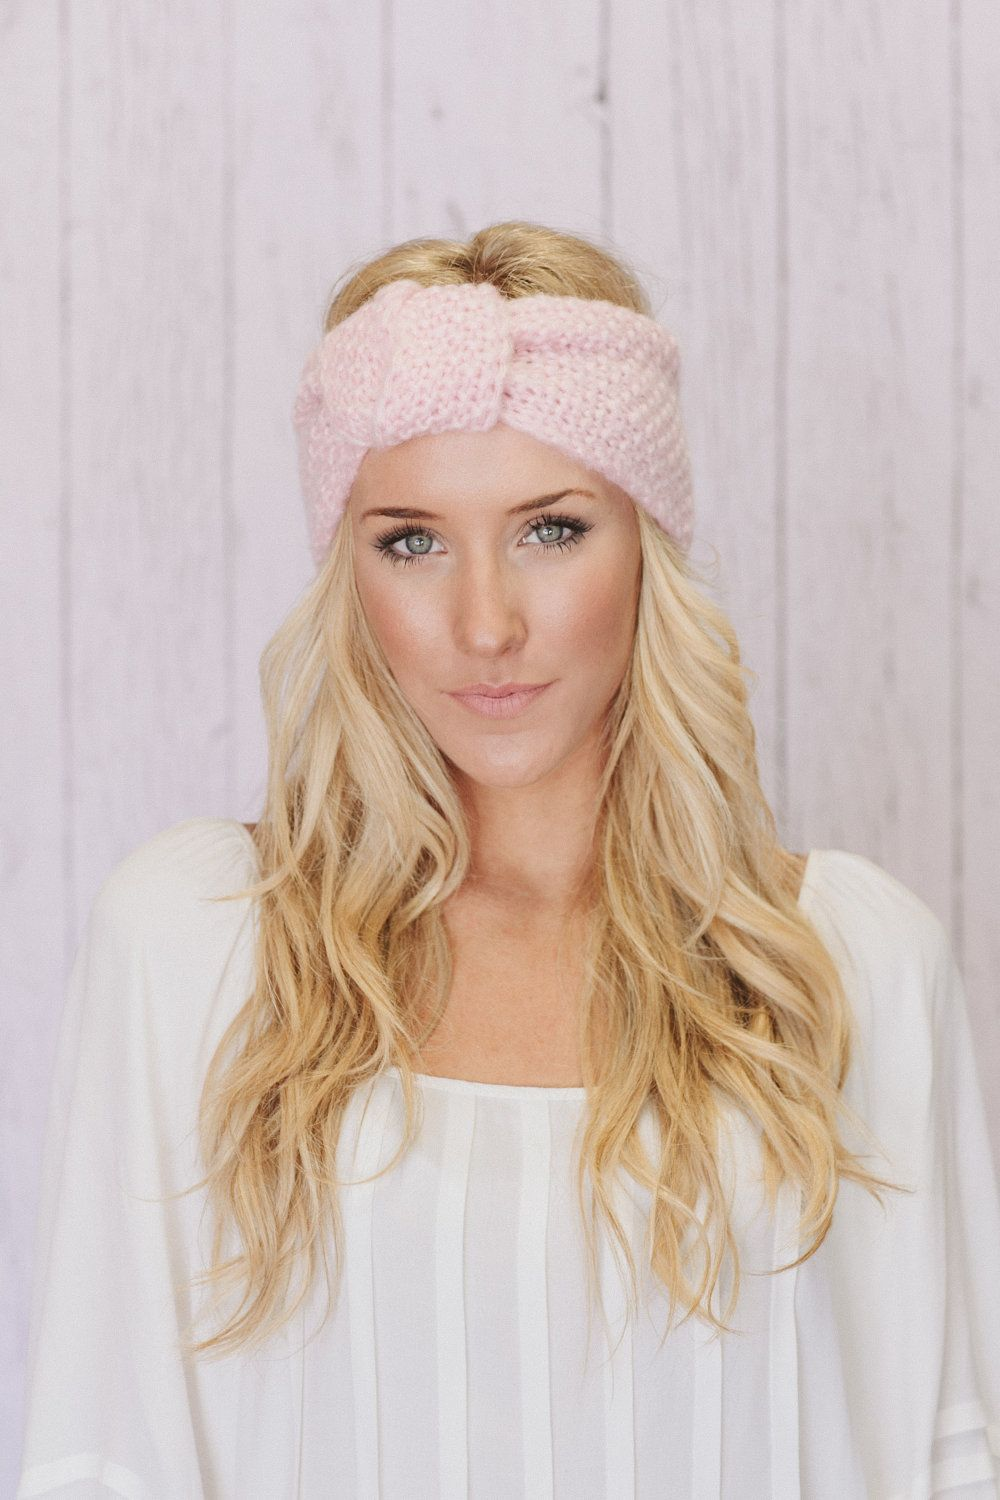 Knitted Headband Knotted Turband Ear Warmer Cotton Candy Pink (HBK1 ...